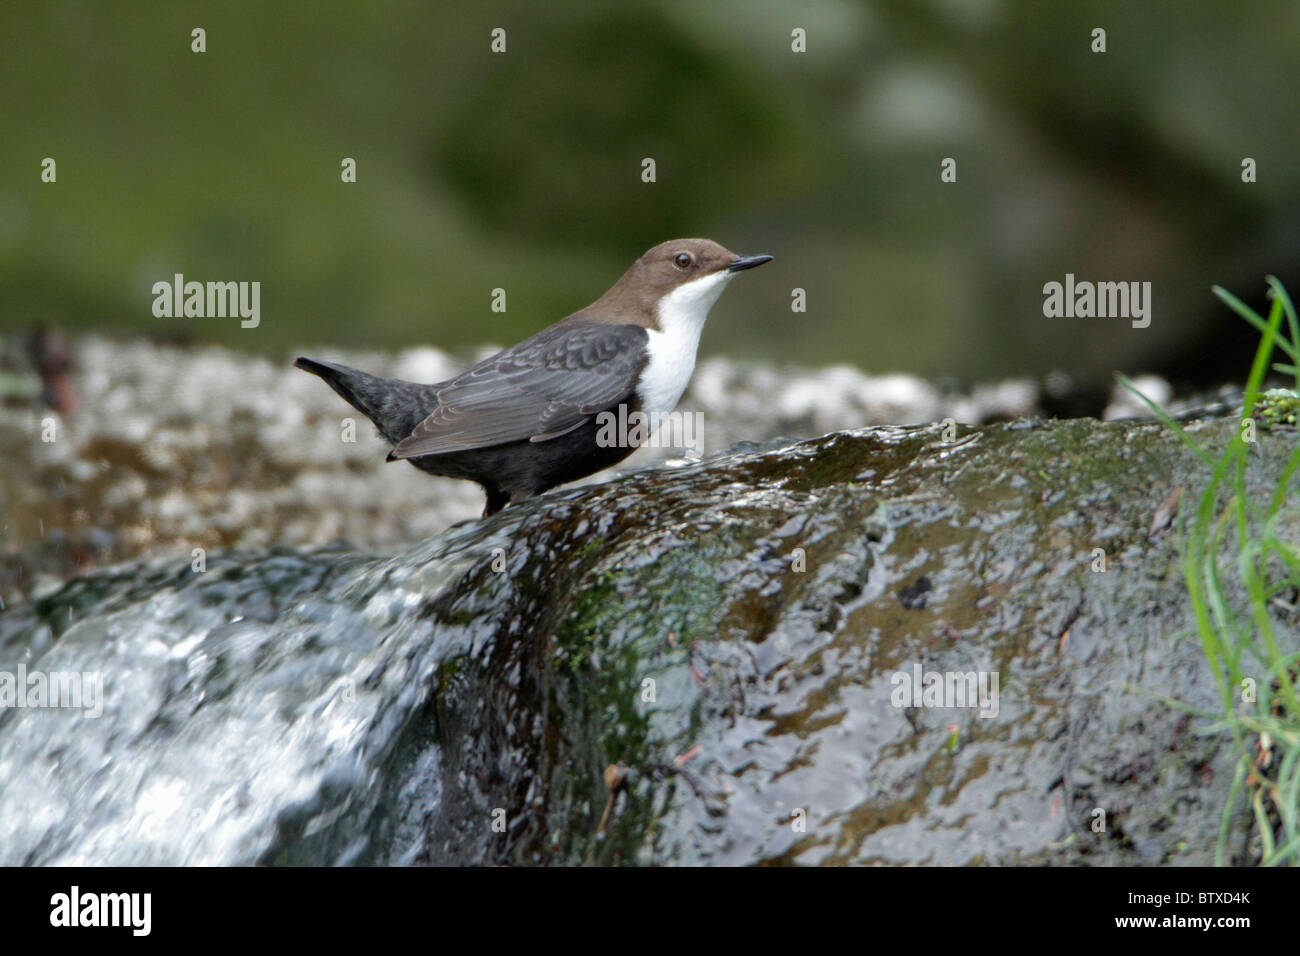 Dipper (Cinclus cinclus), standing at edge of hill stream, Germany - Stock Image